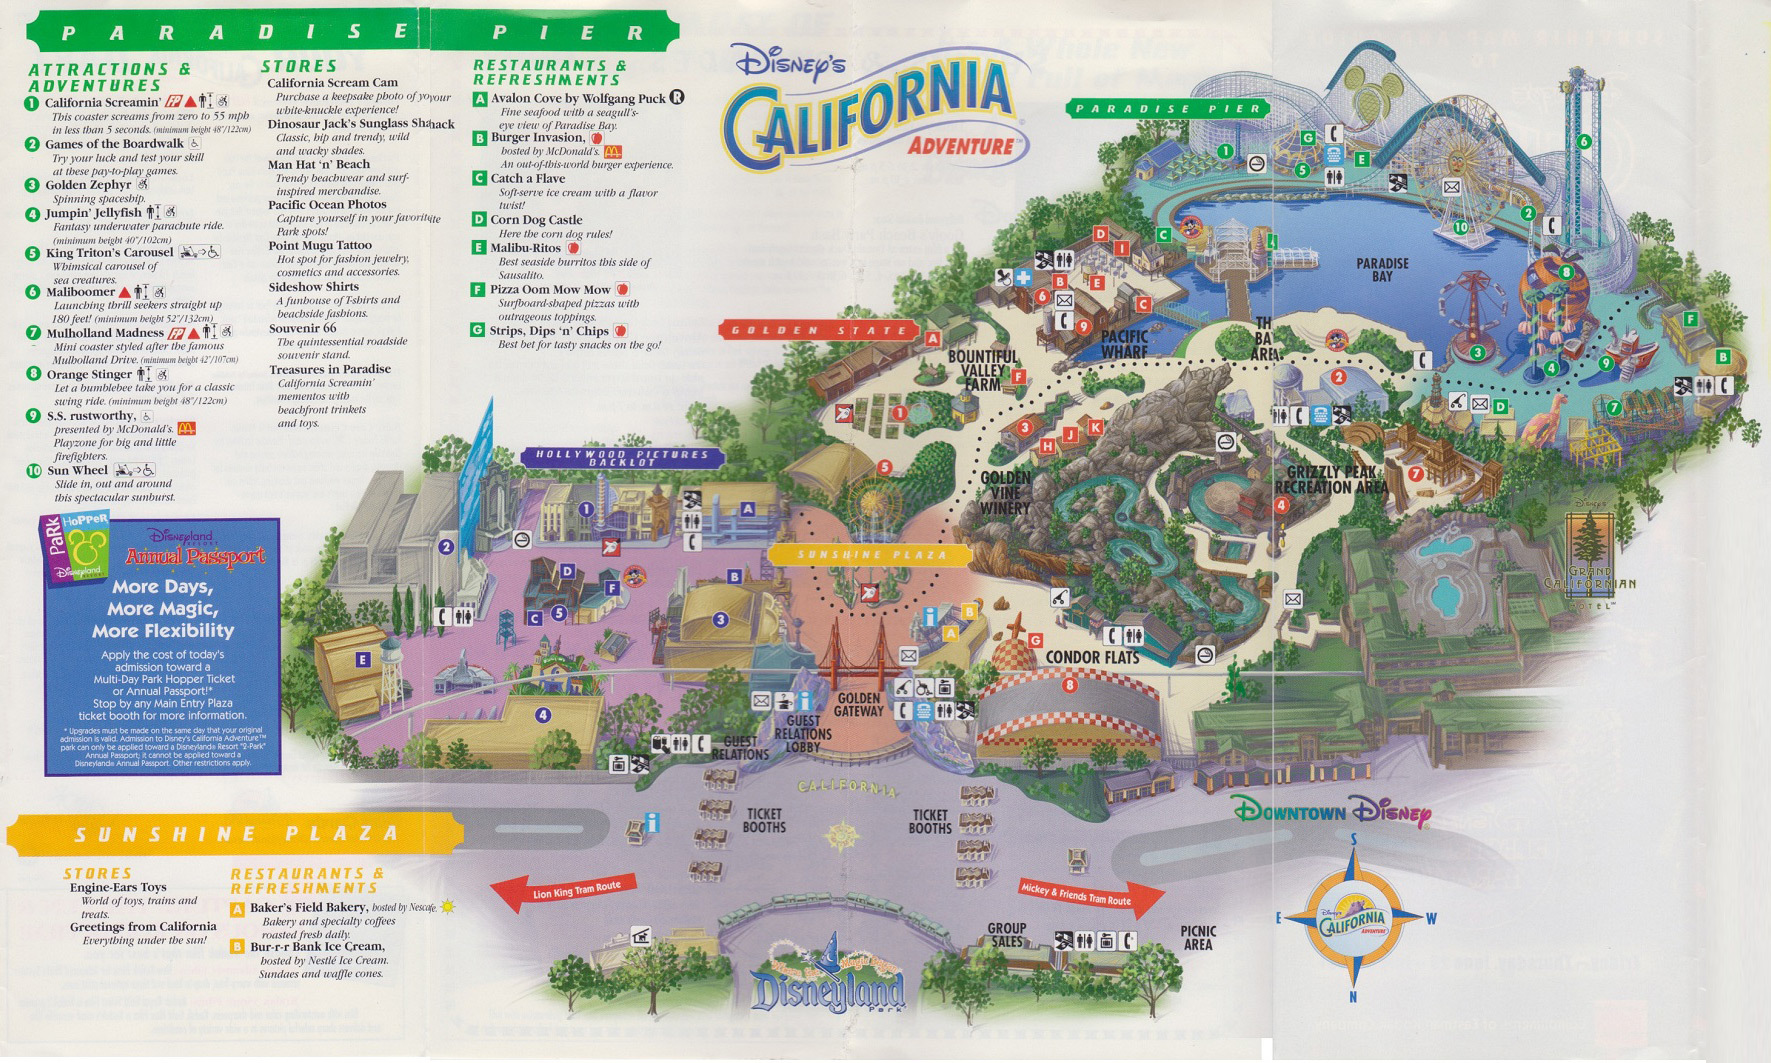 Disney Los Angeles Map.Here S A Reminder Of What Disney California Adventure Looked Like